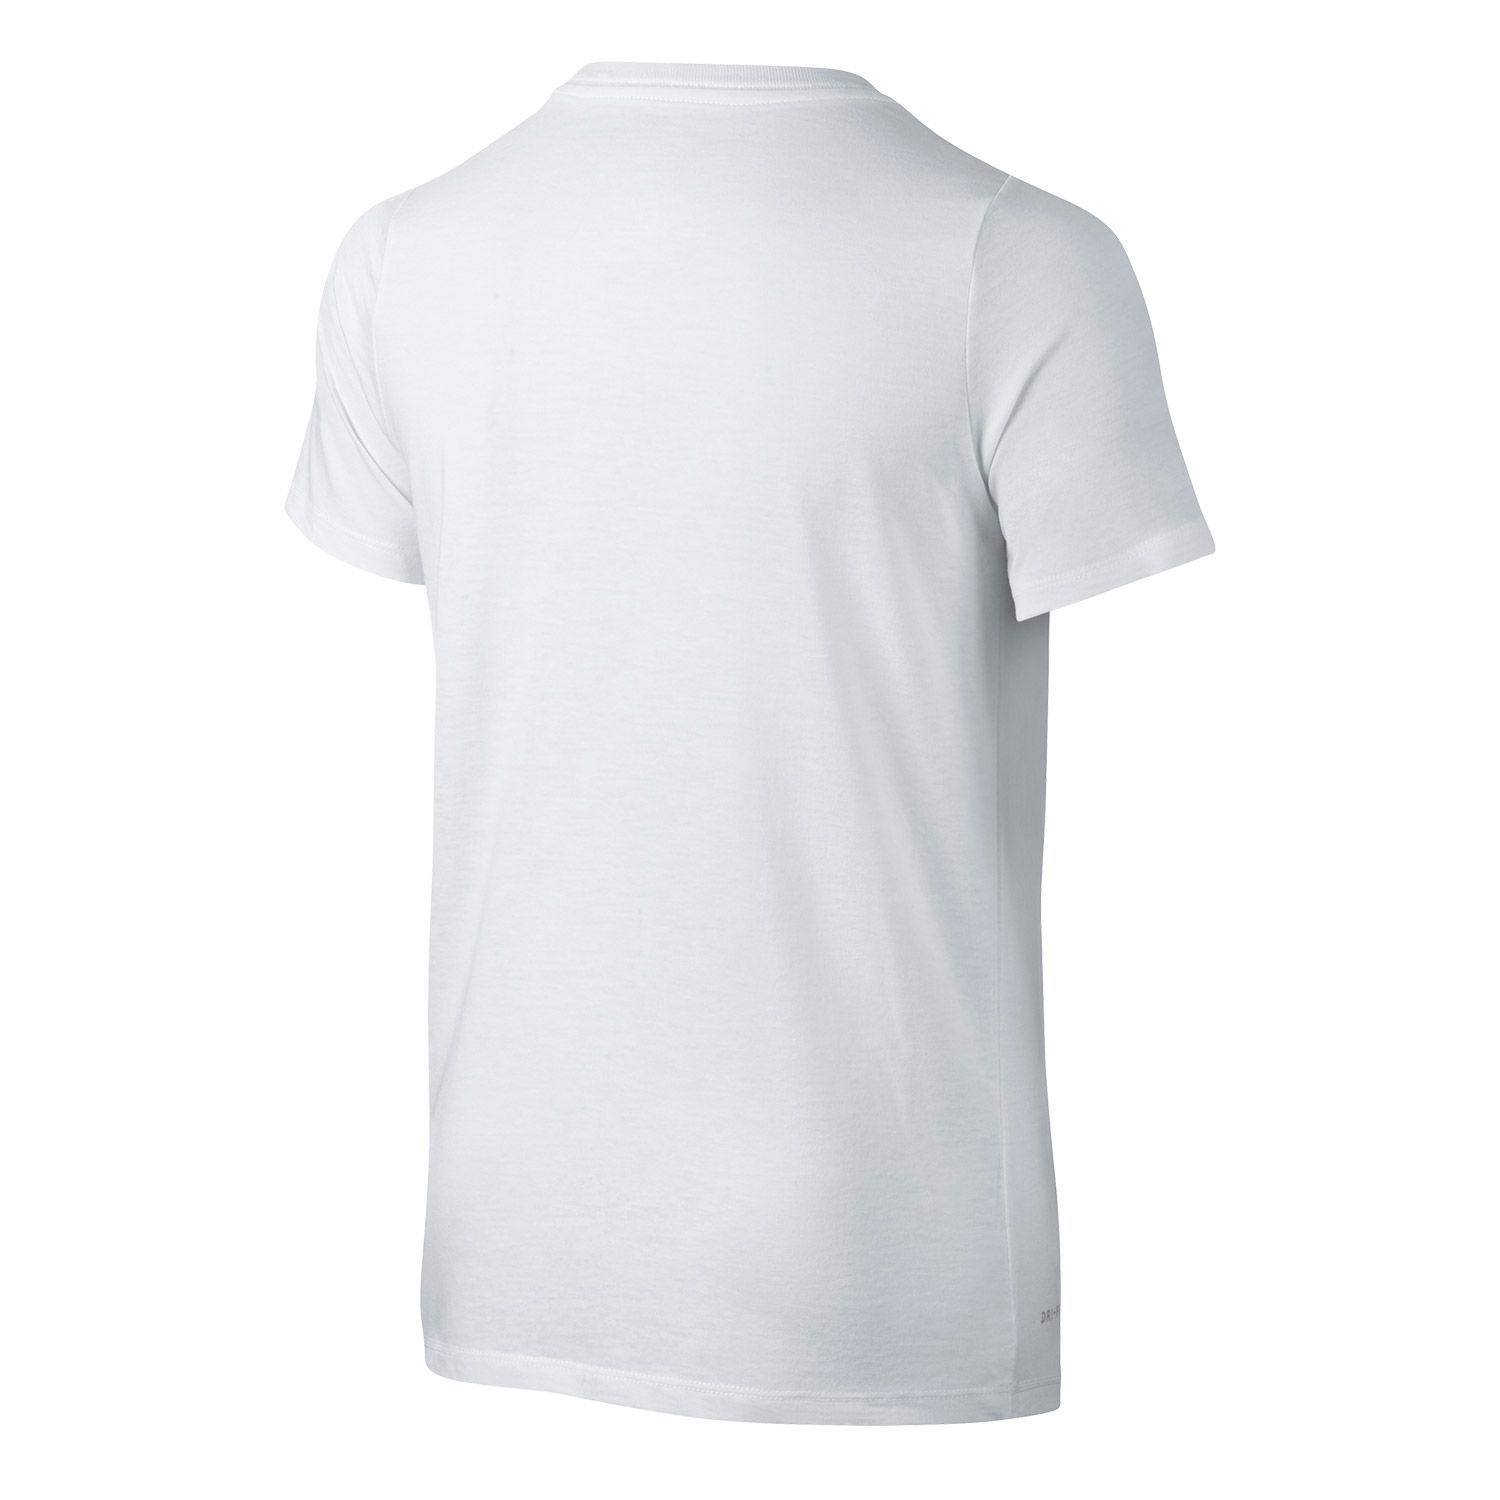 Camiseta Nike Dri-fit Court Iridecent